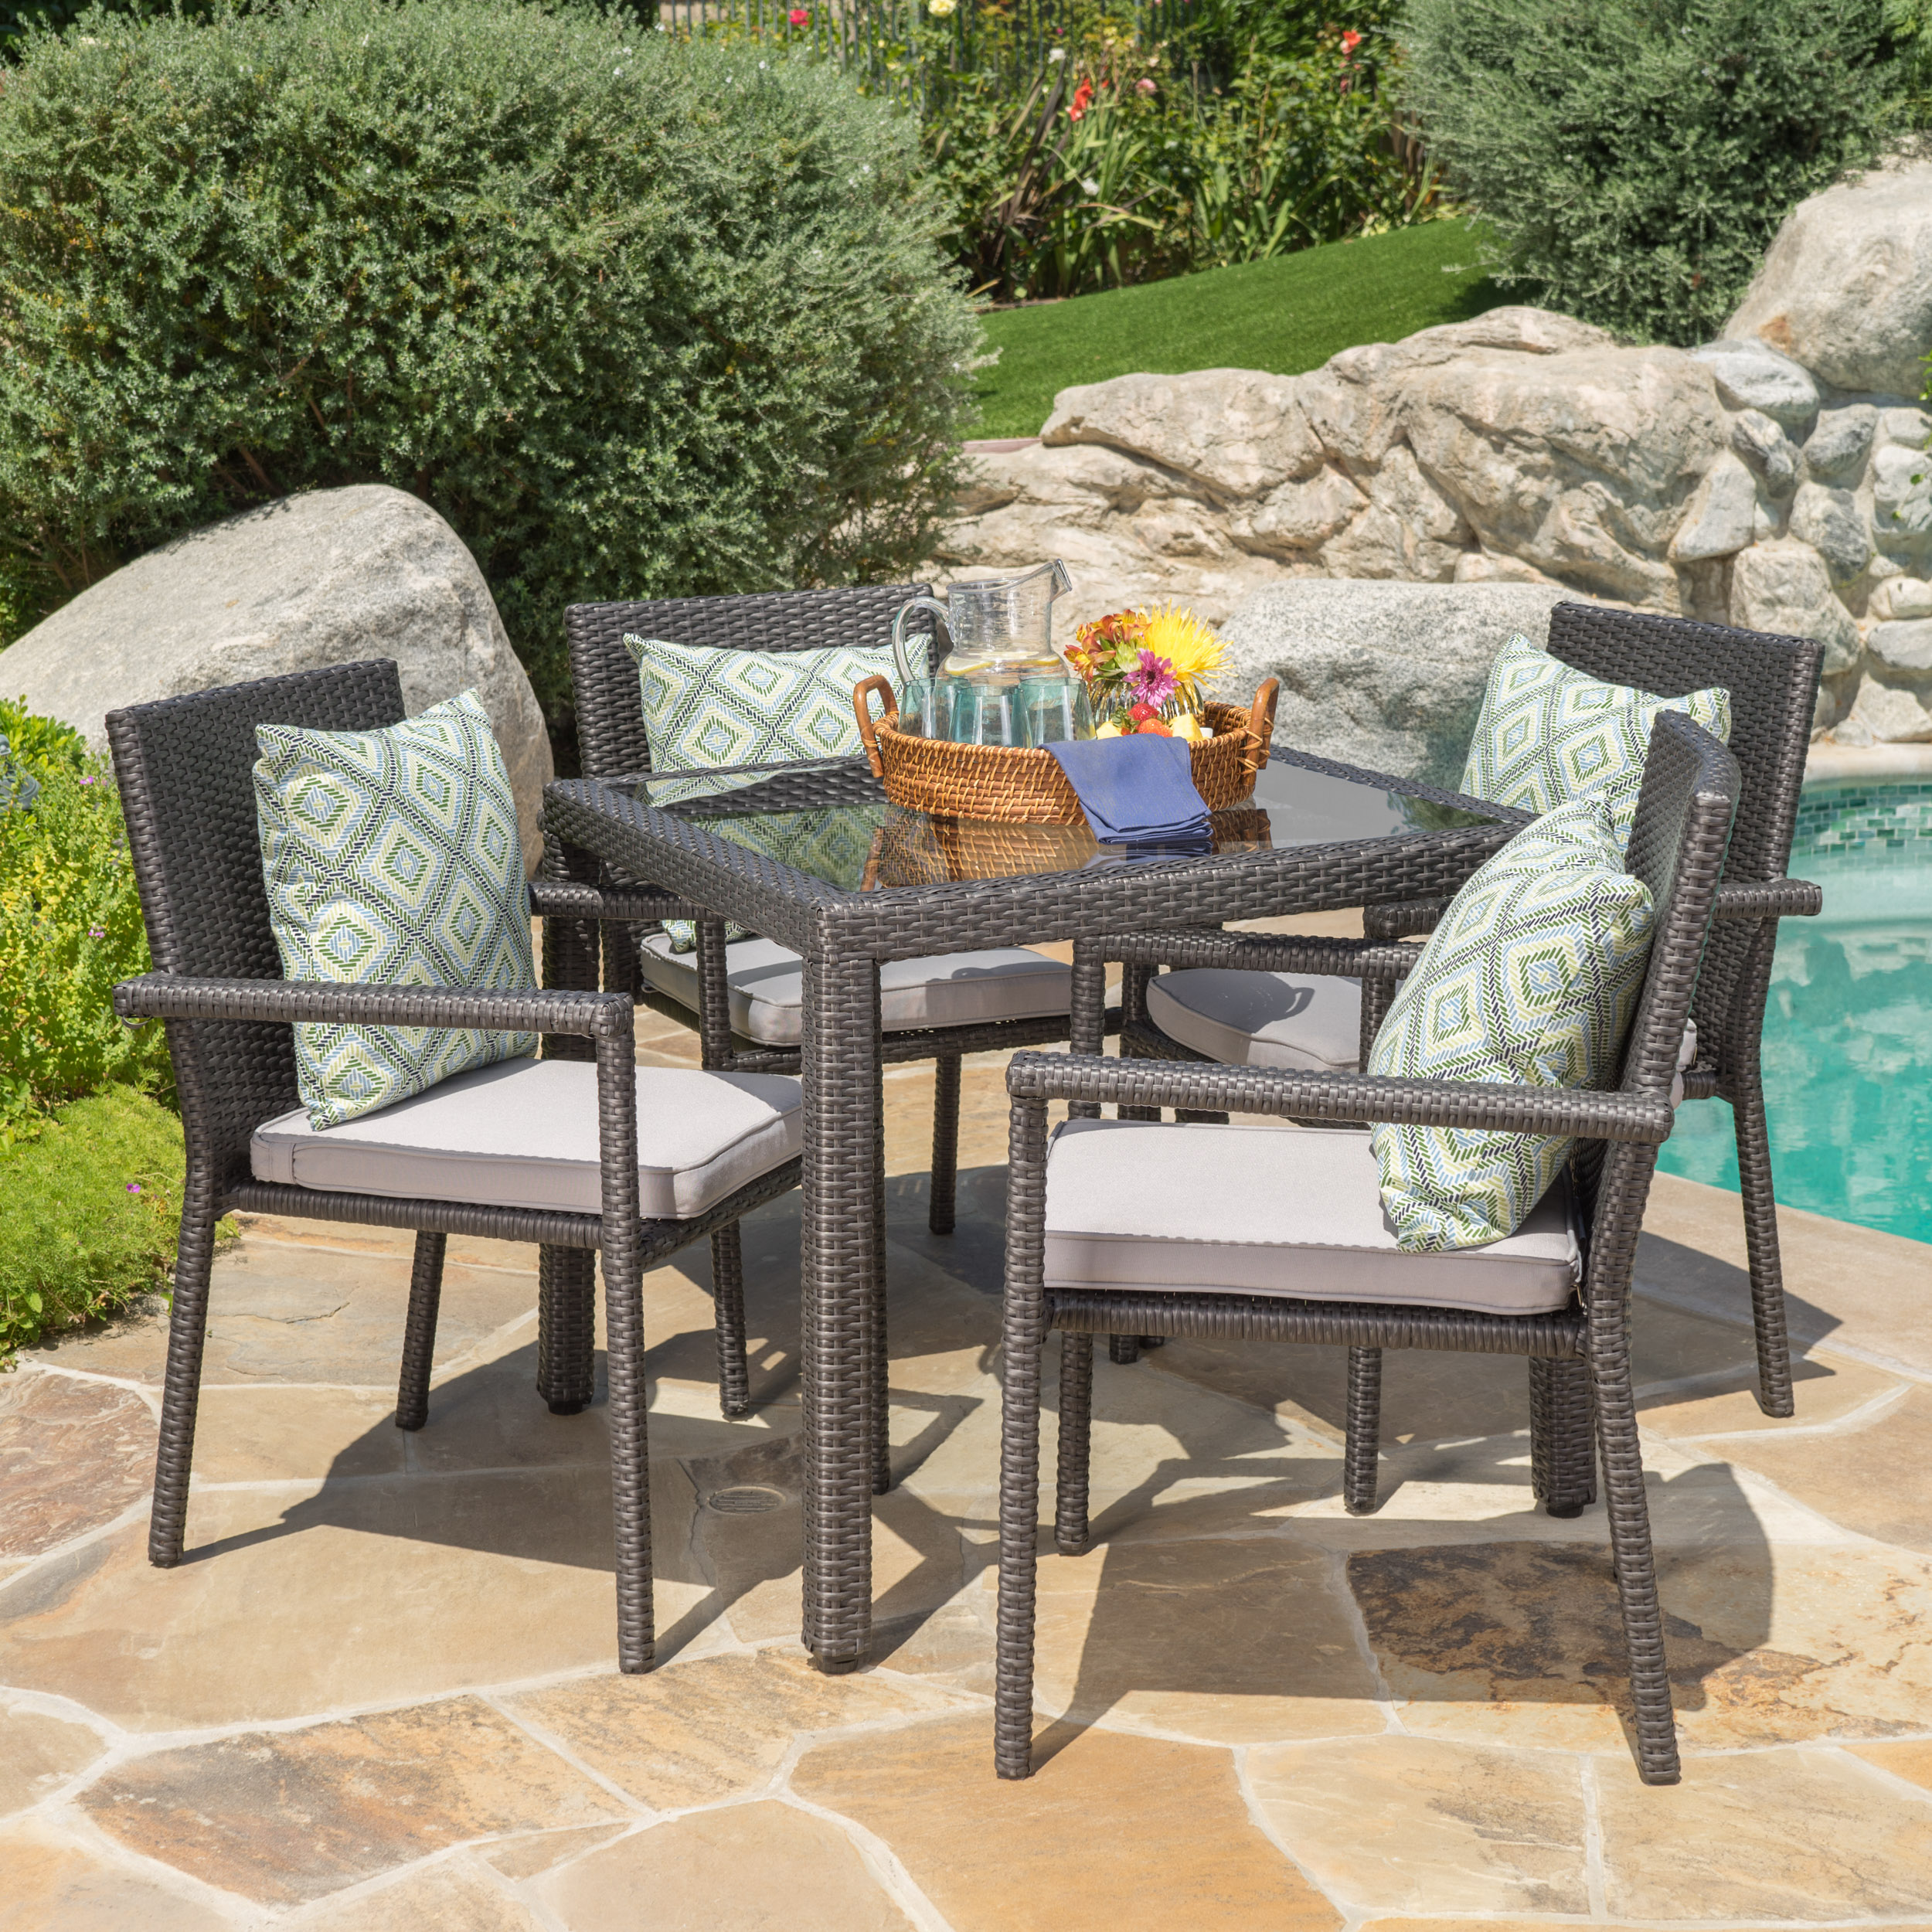 Porto Outdoor 5 Piece Square Wicker Dining Set with Cushions, Grey, Silver